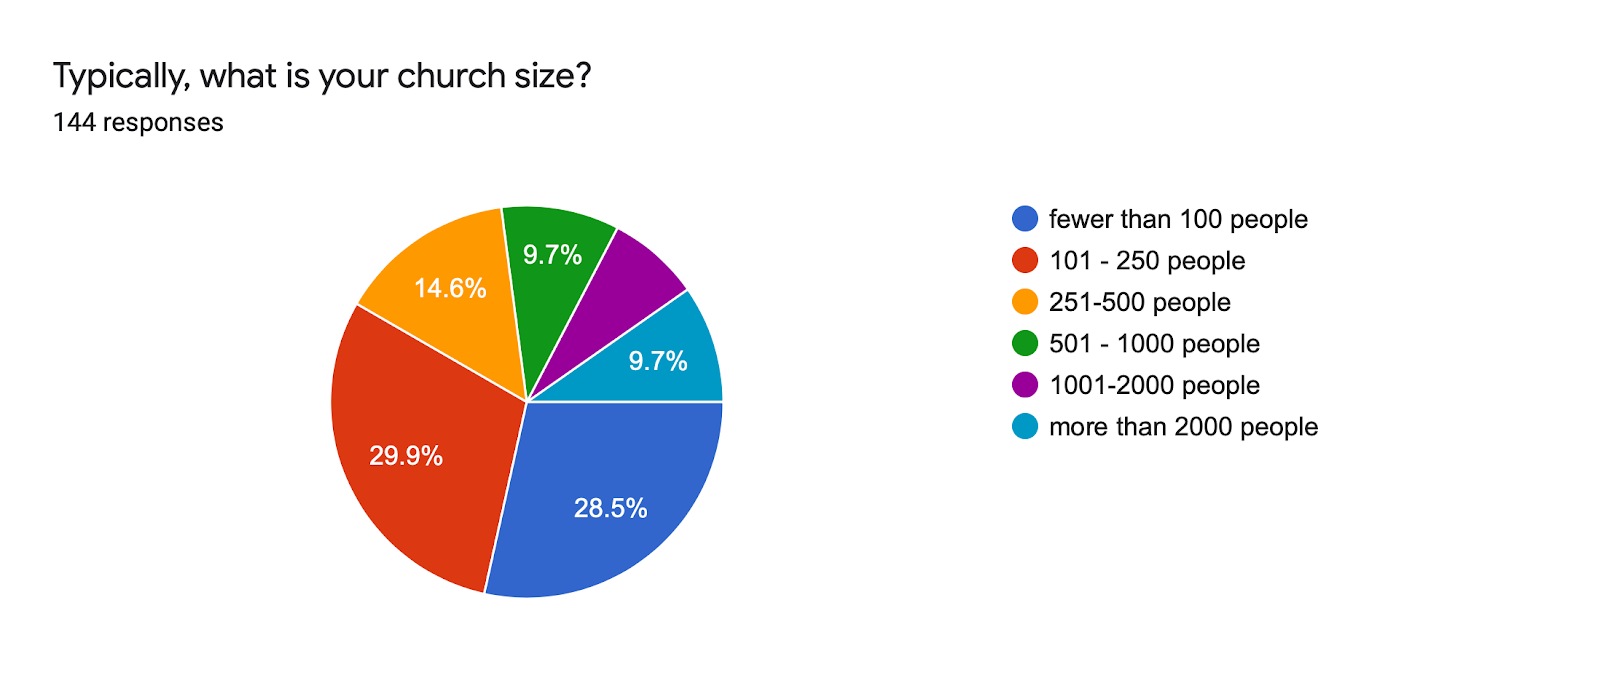 73% of respondents to our COVID survey came from churches smaller than 500 people.